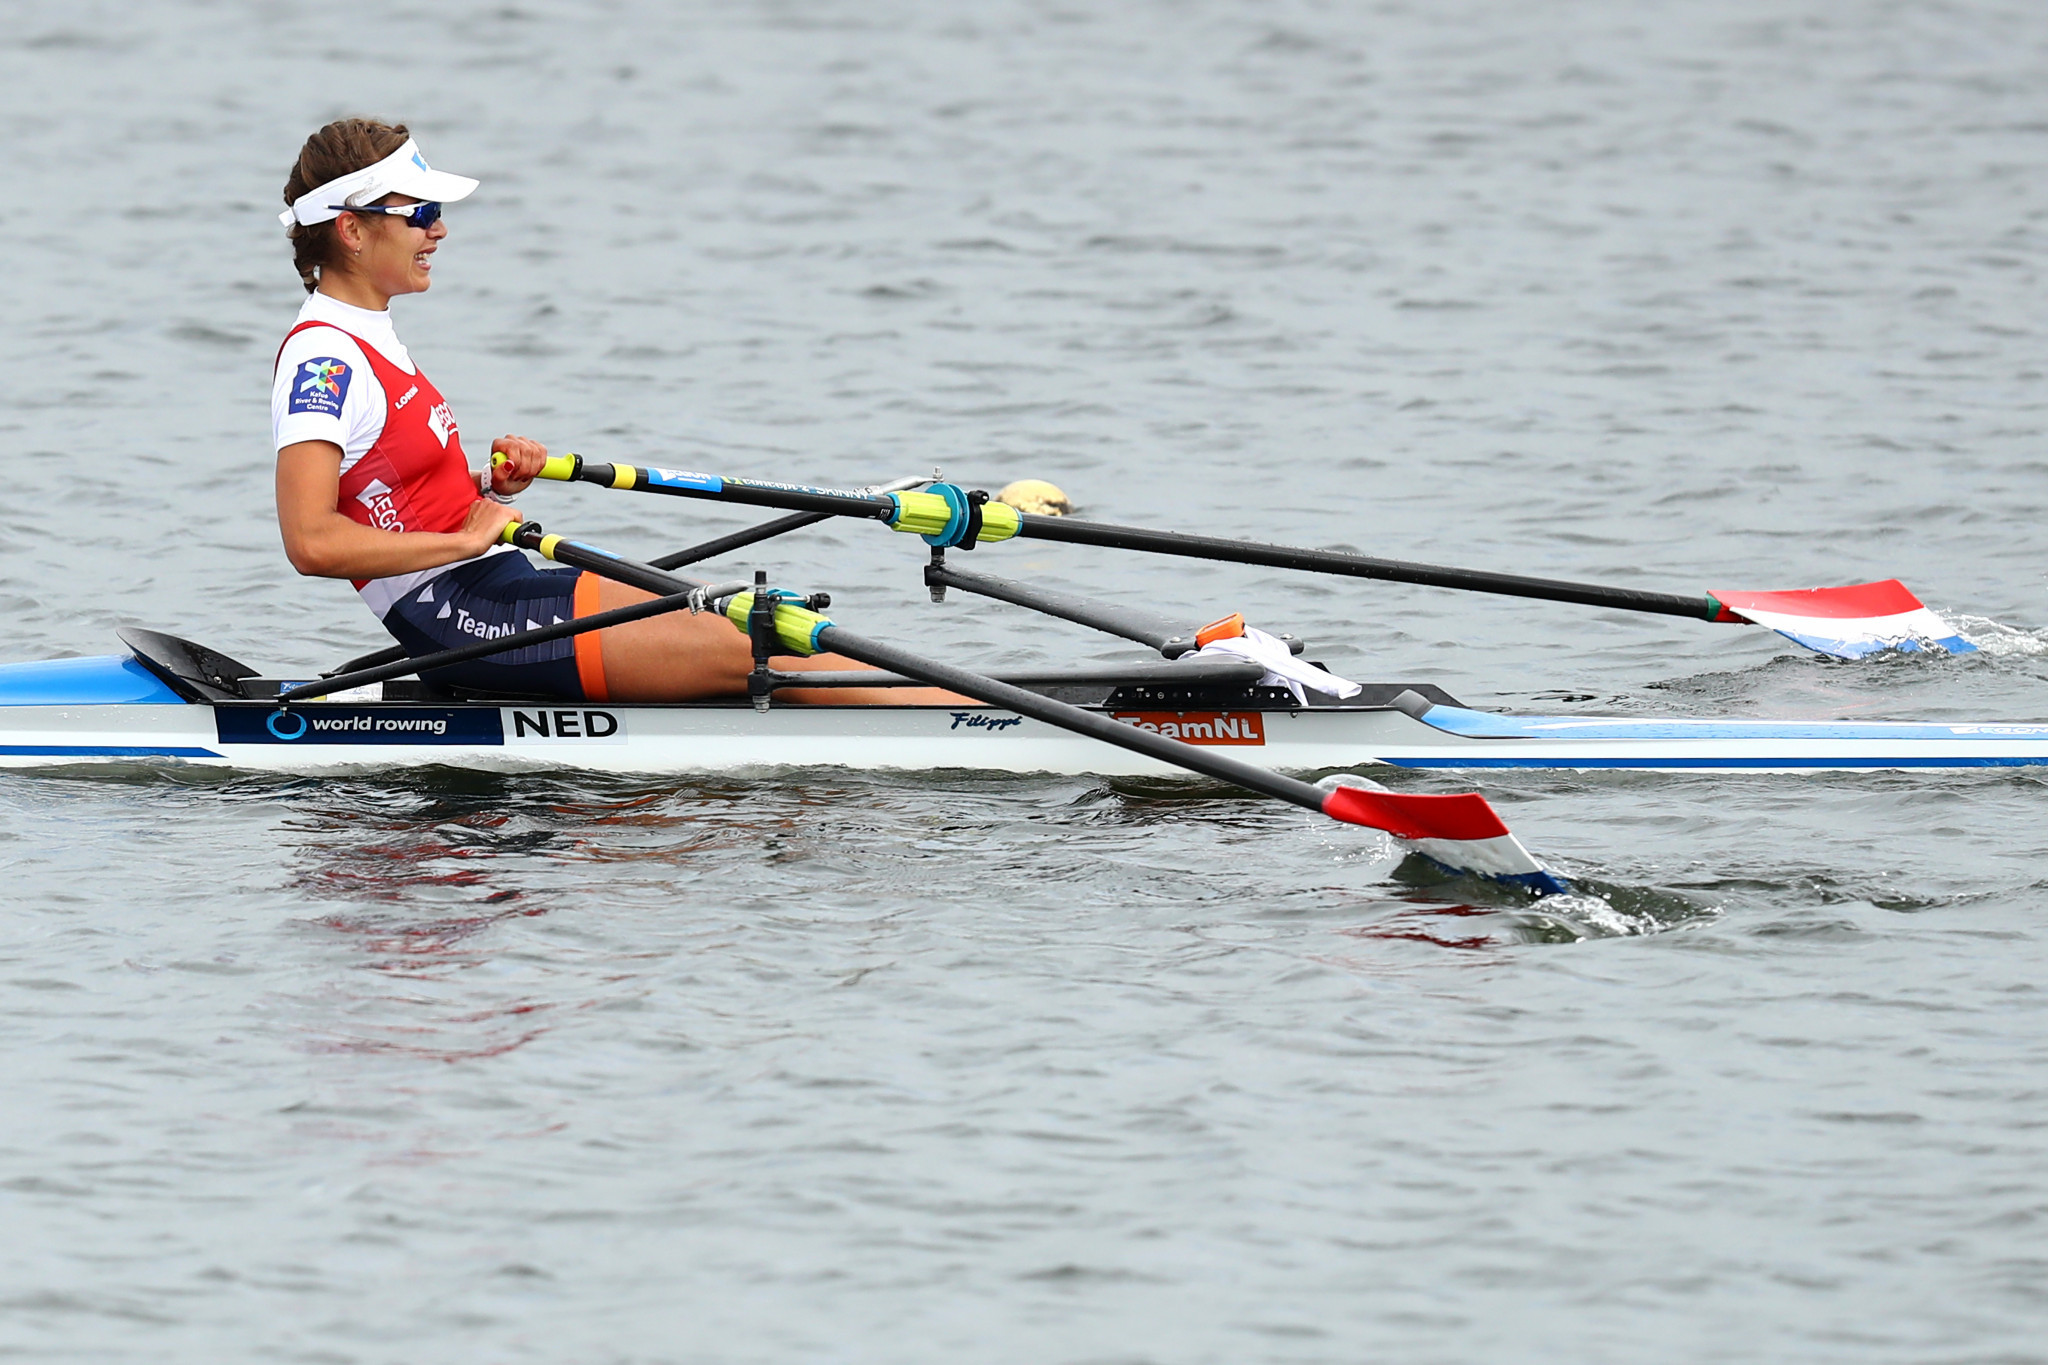 Golds galore for The Netherlands on final day of European Rowing Championships